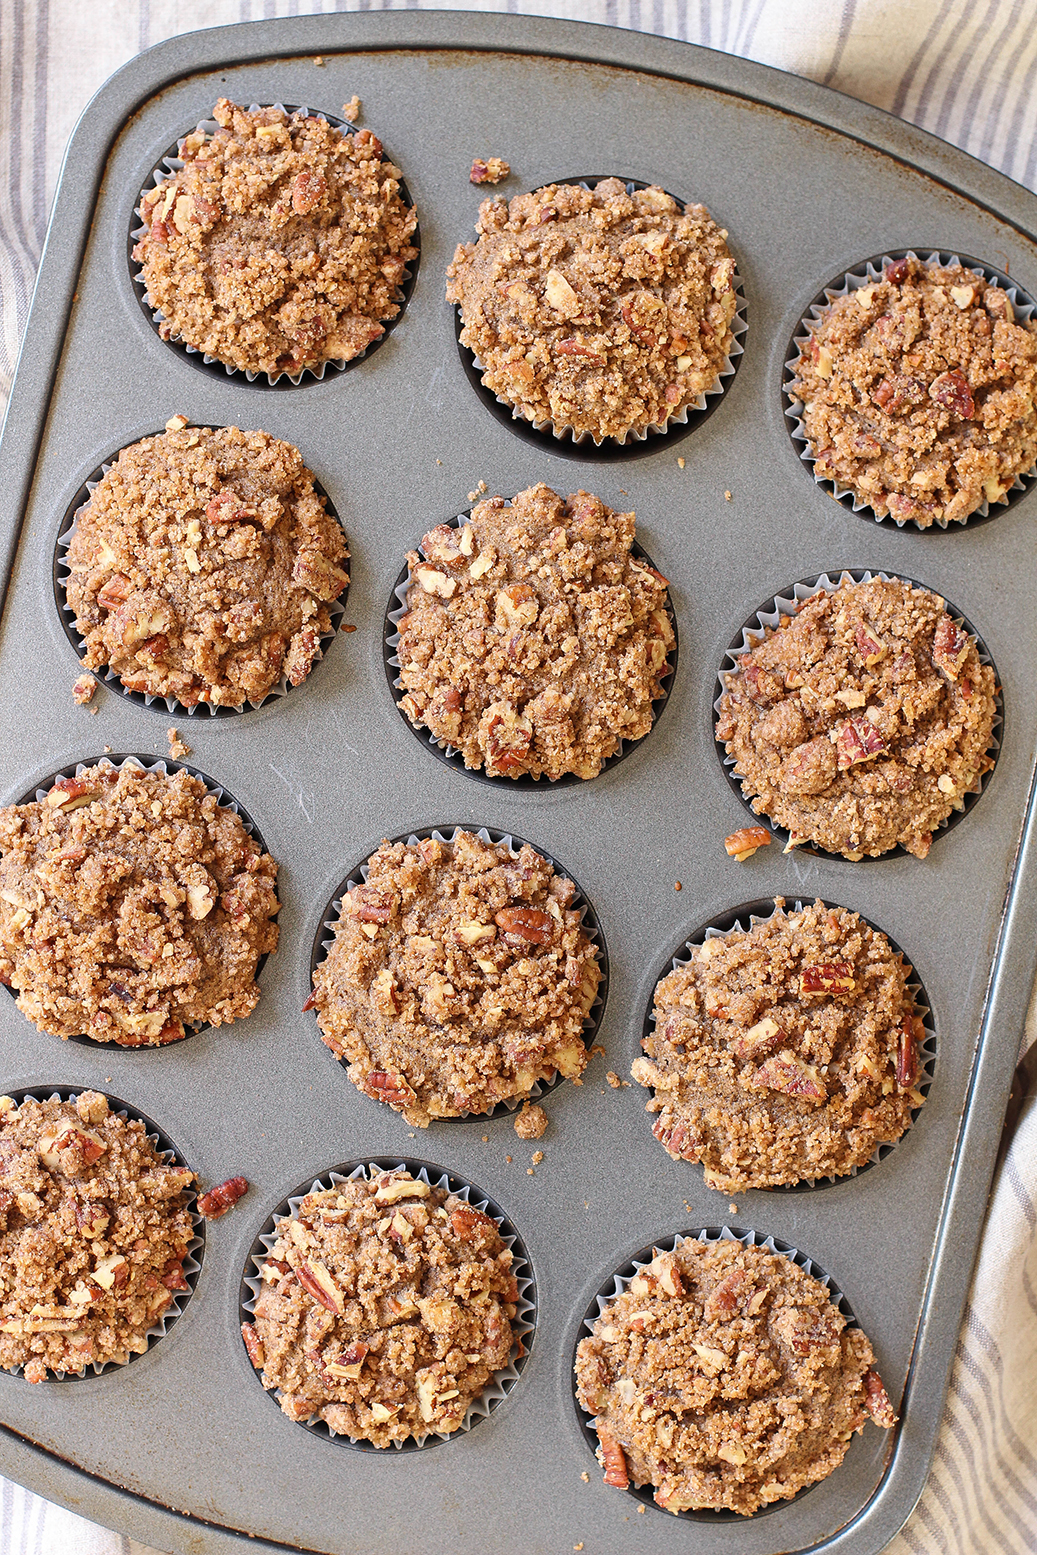 Vegan Cinnamon Pear Buckwheat Muffins with Pecan Streusel